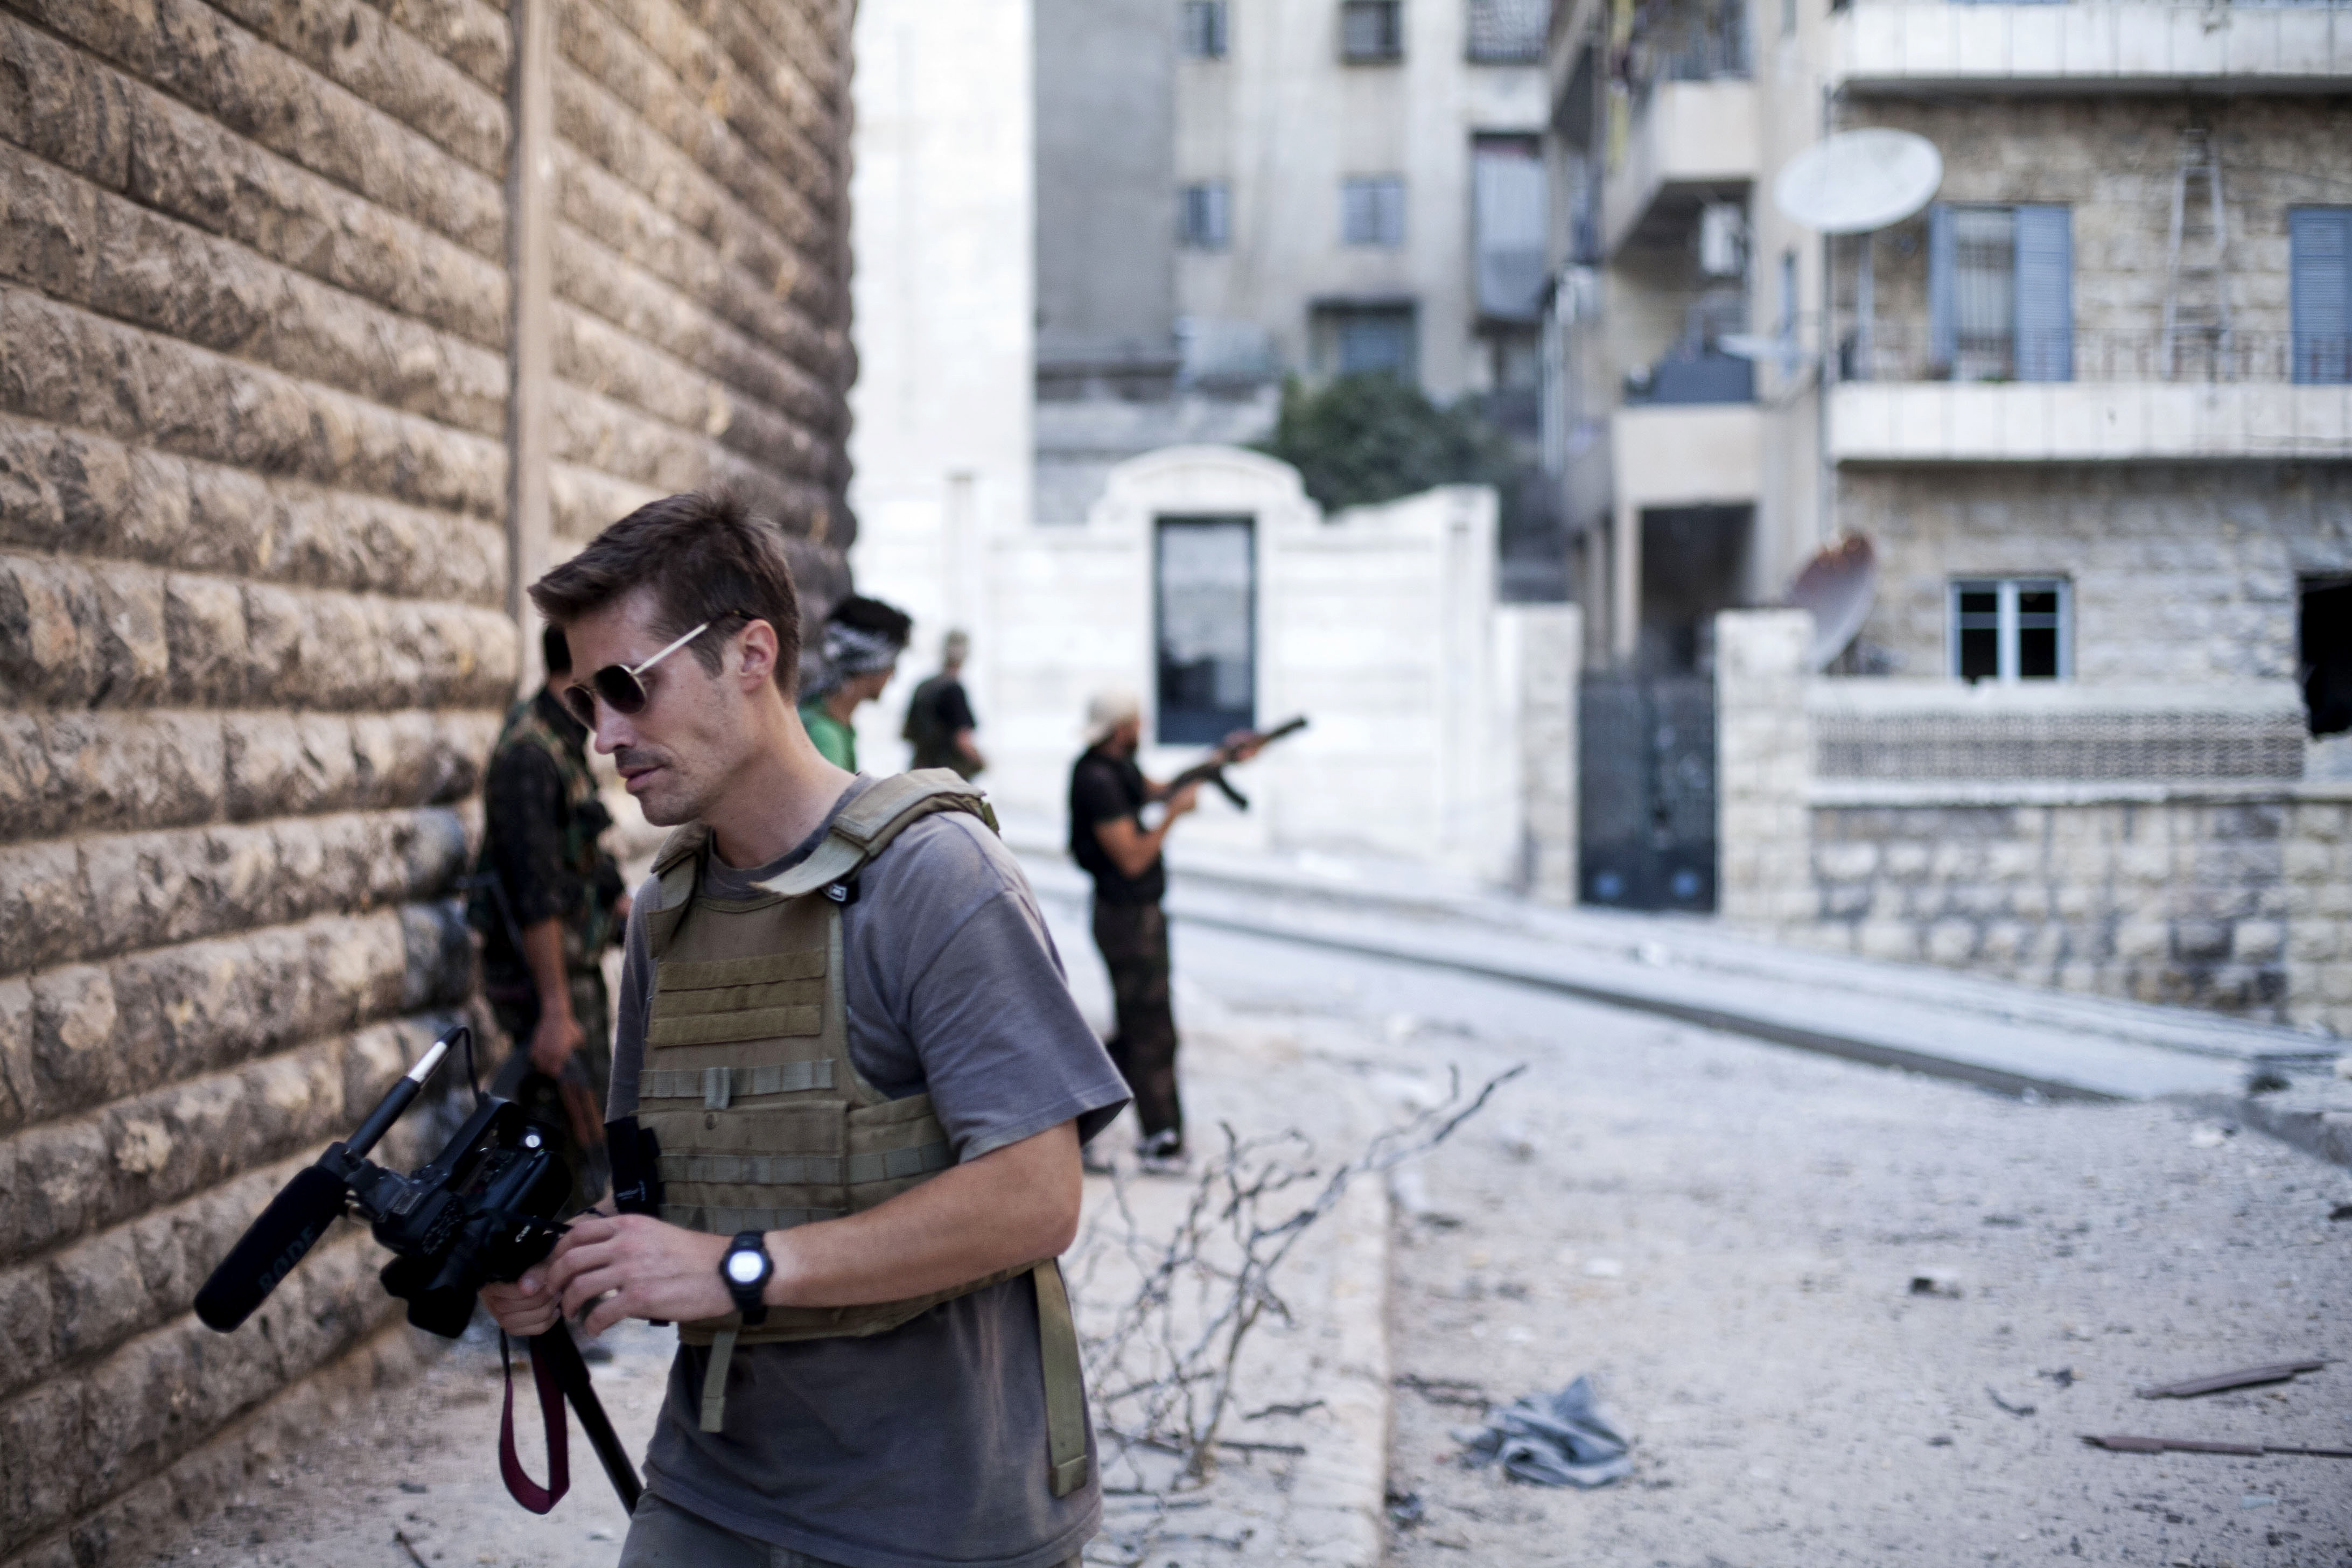 This September 2012 file photo posted on the website freejamesfoley.org shows journalist James Foley in Aleppo, Syria.In a horrifying act of revenge for U.S. airstrikes in northern Iraq, militants with the Islamic State extremist group have beheaded Foley — and are threatening to kill another hostage, U.S. officials say. (AP Photo/freejamesfoley.org, Manu Brabo)